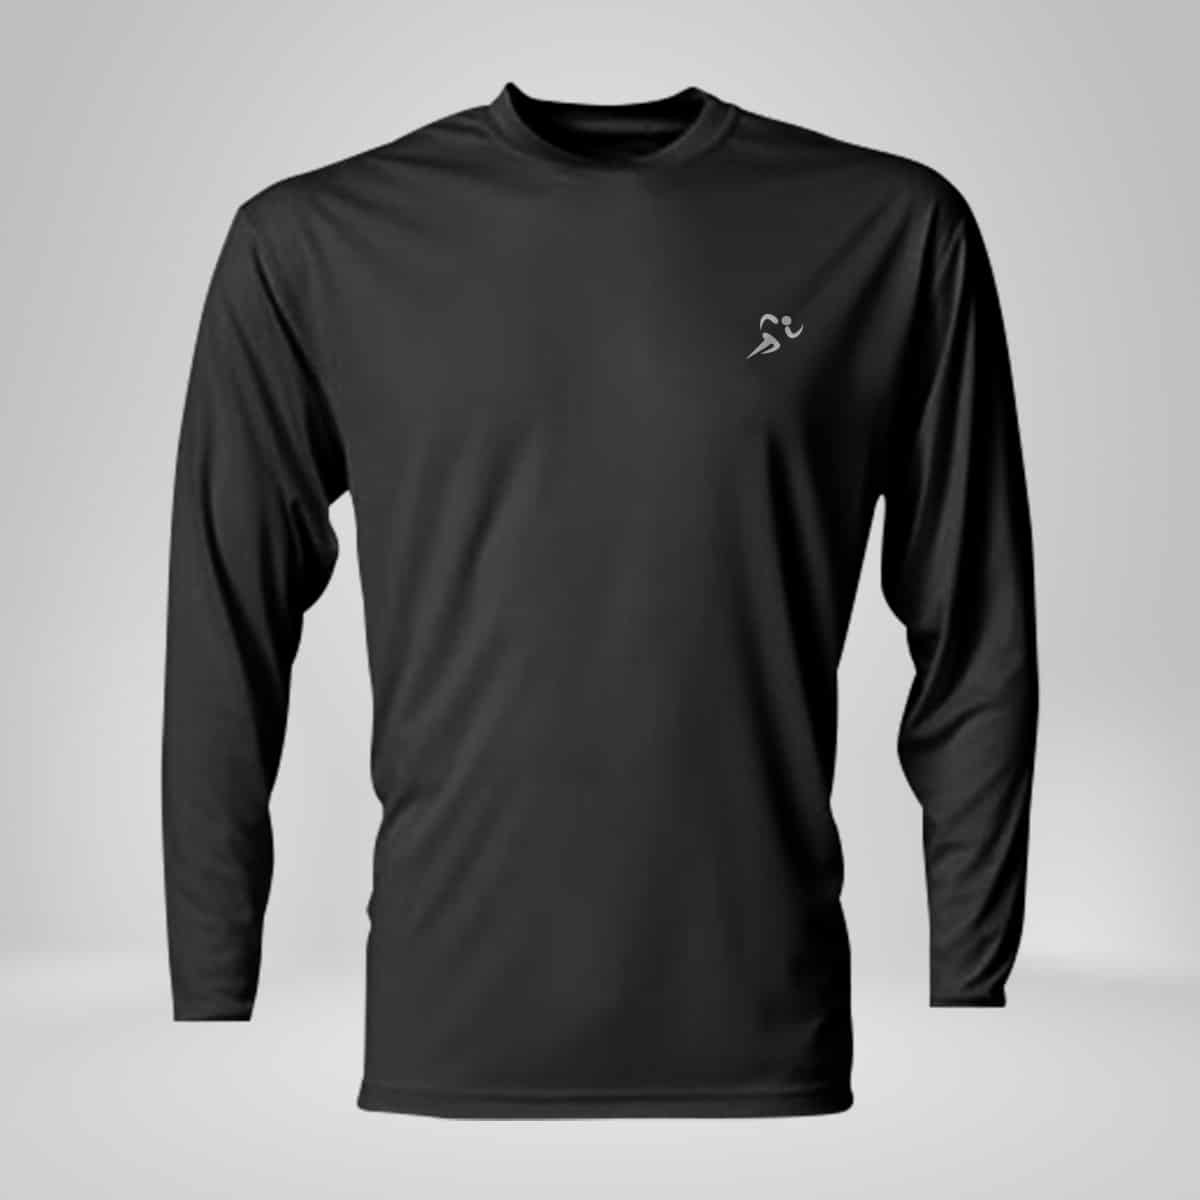 copper fabric long sleeve athletic shirt